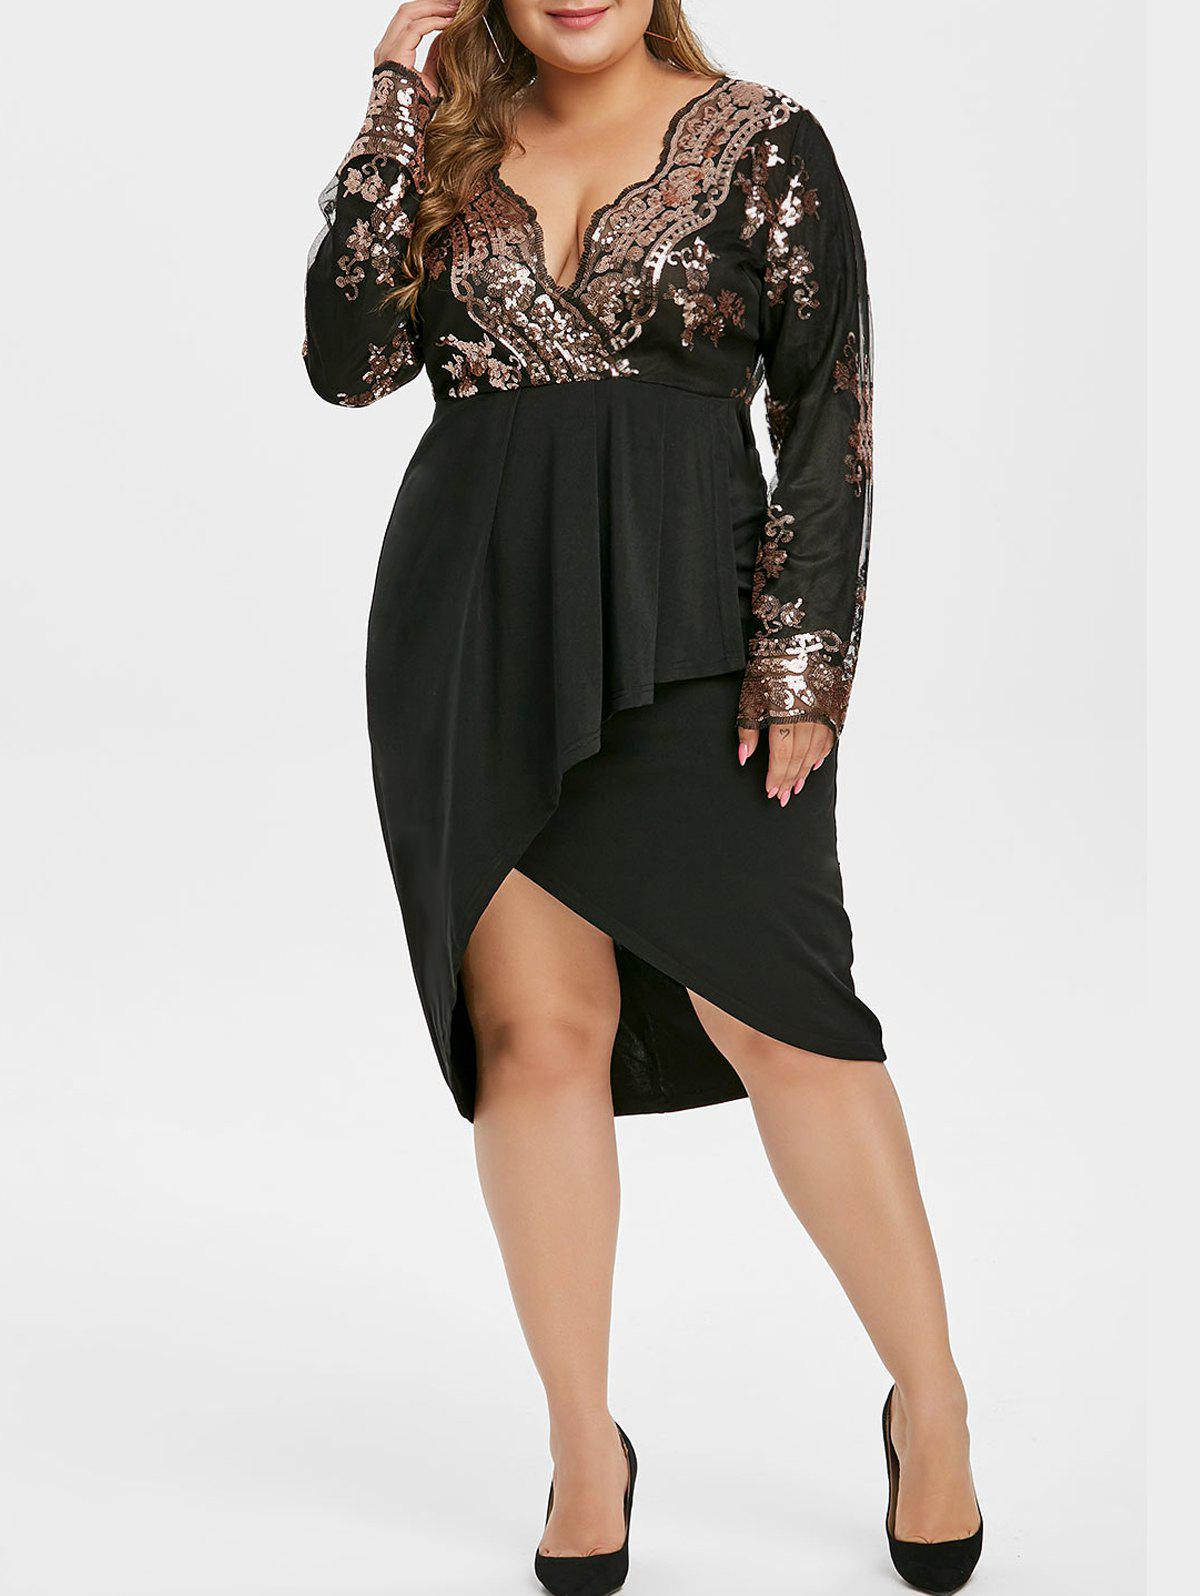 Plus Size Sequined Asymmetric Surplice Dress - BLACK 3X